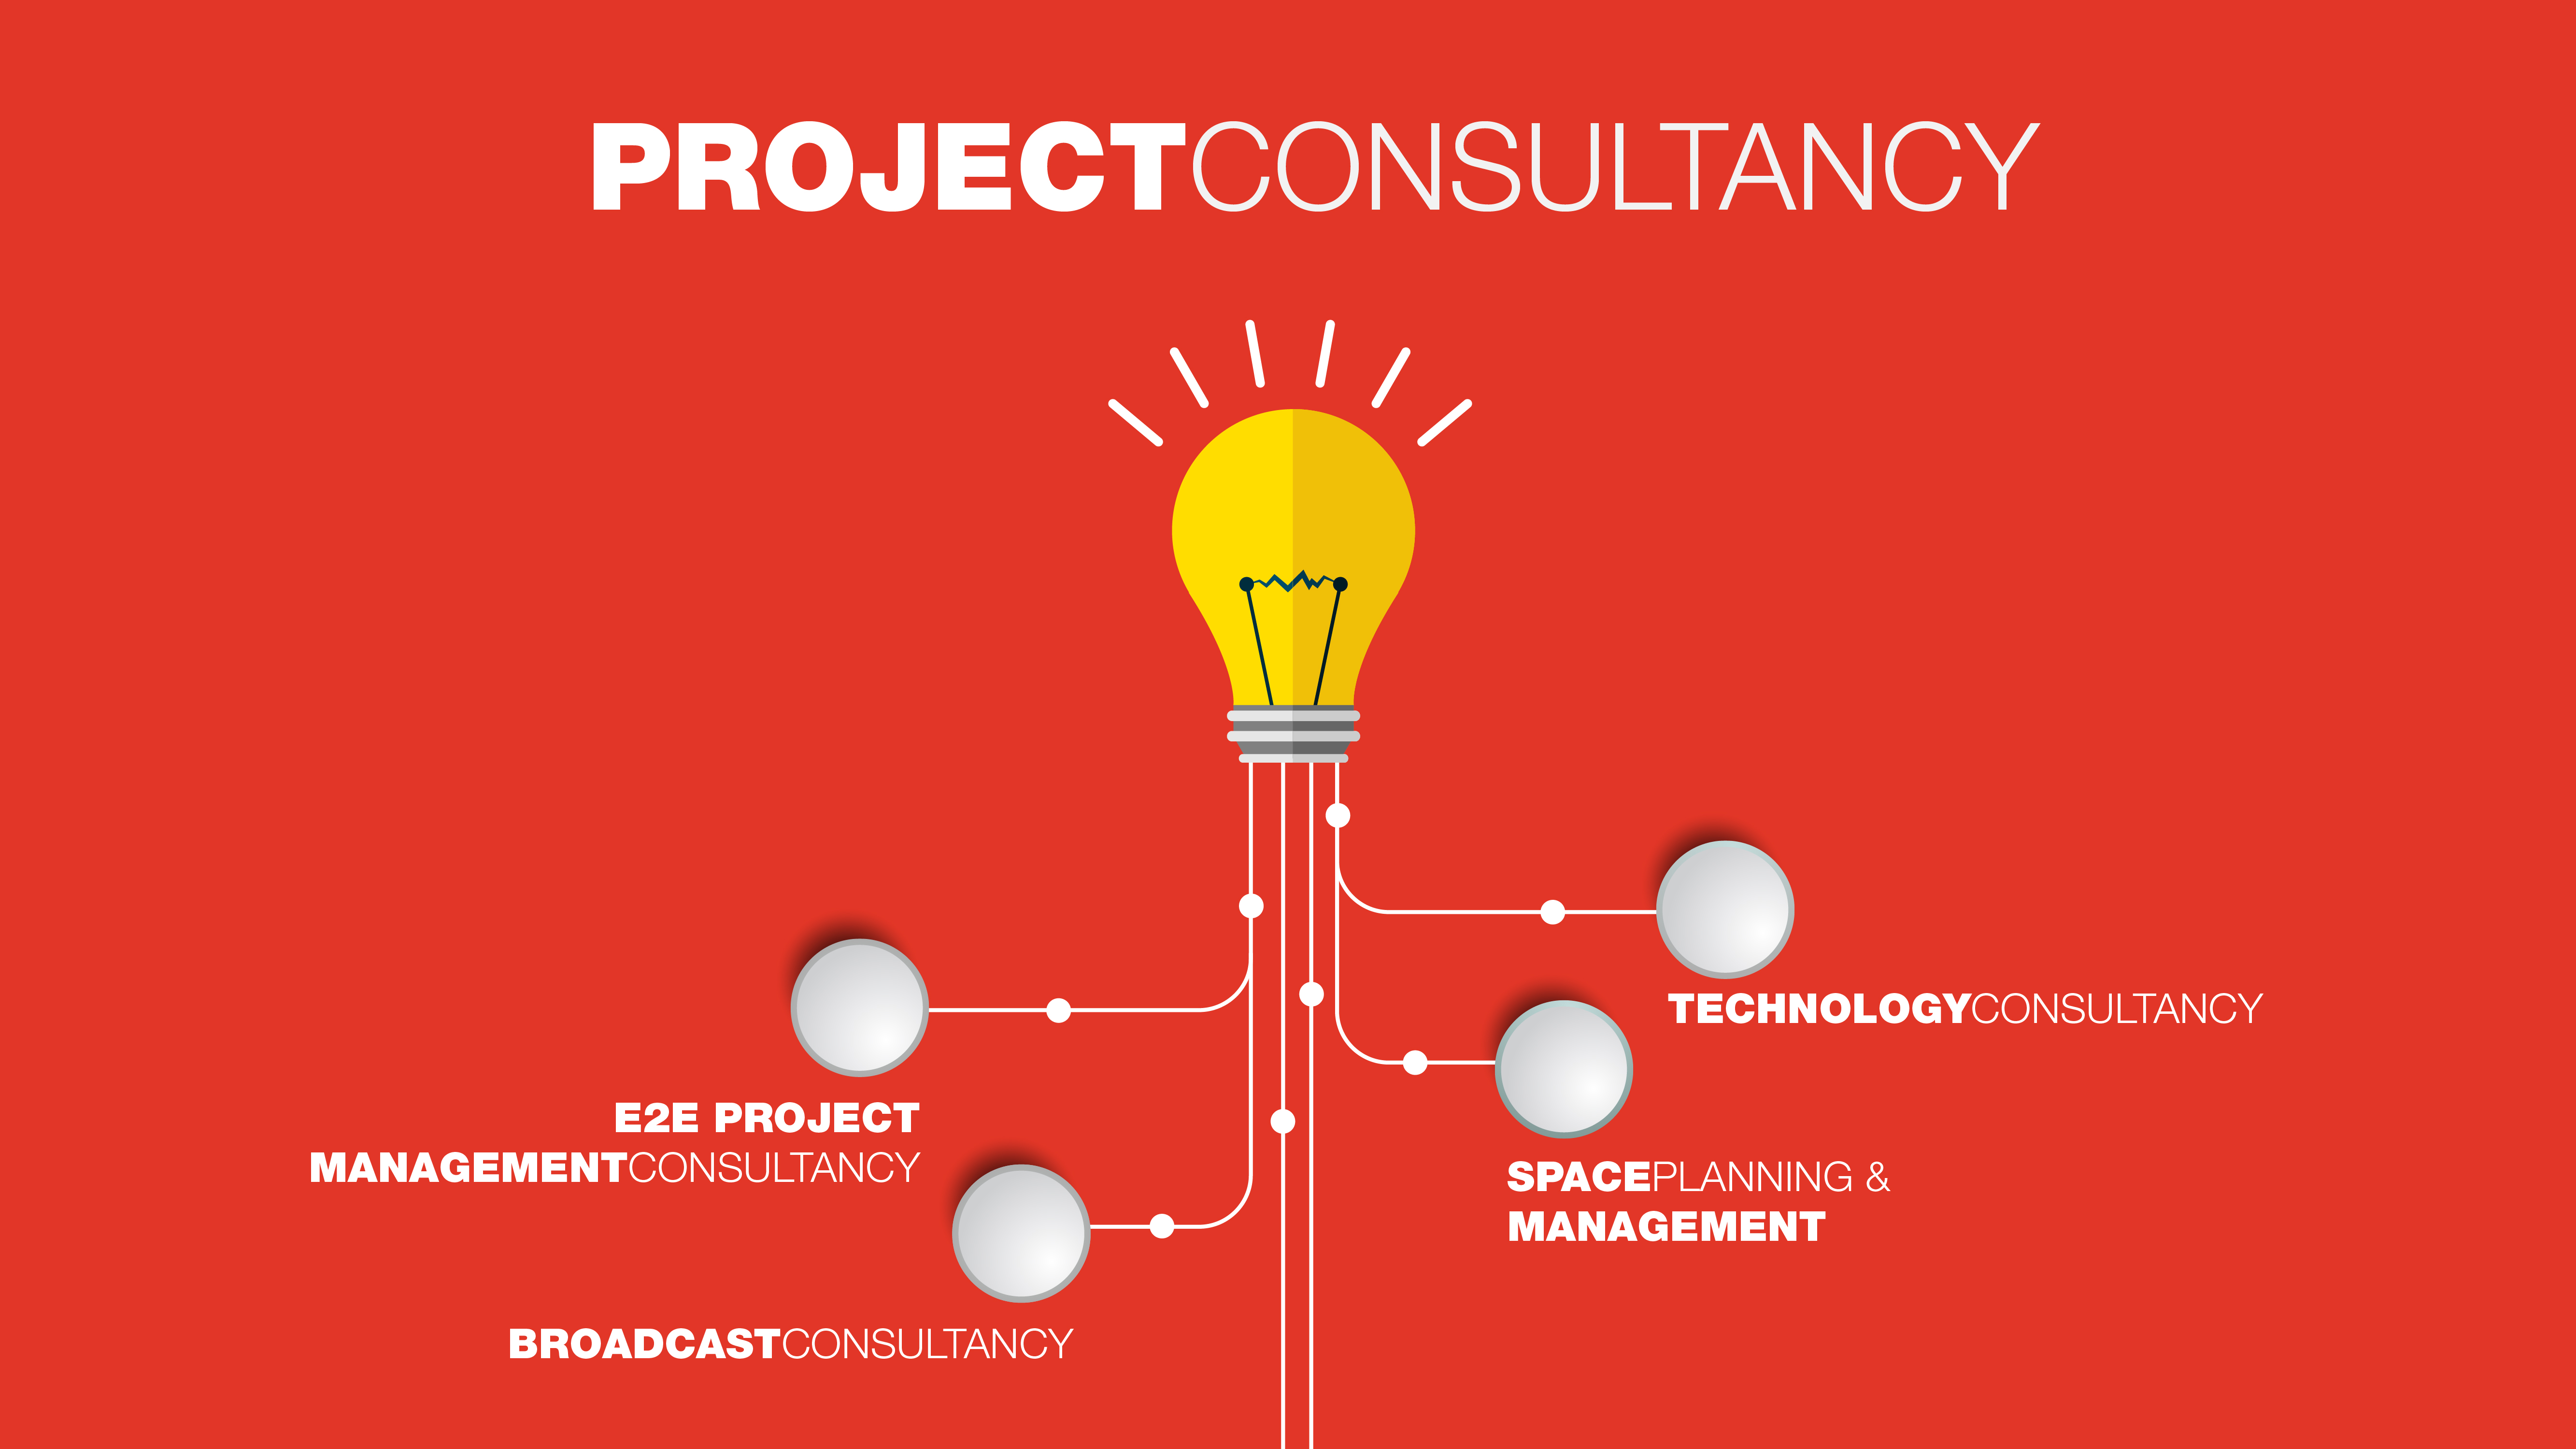 http://www.rgbbroadcasting.com/wp-content/uploads/2016/03/PROJECT-CONSULTANCY-02.jpg